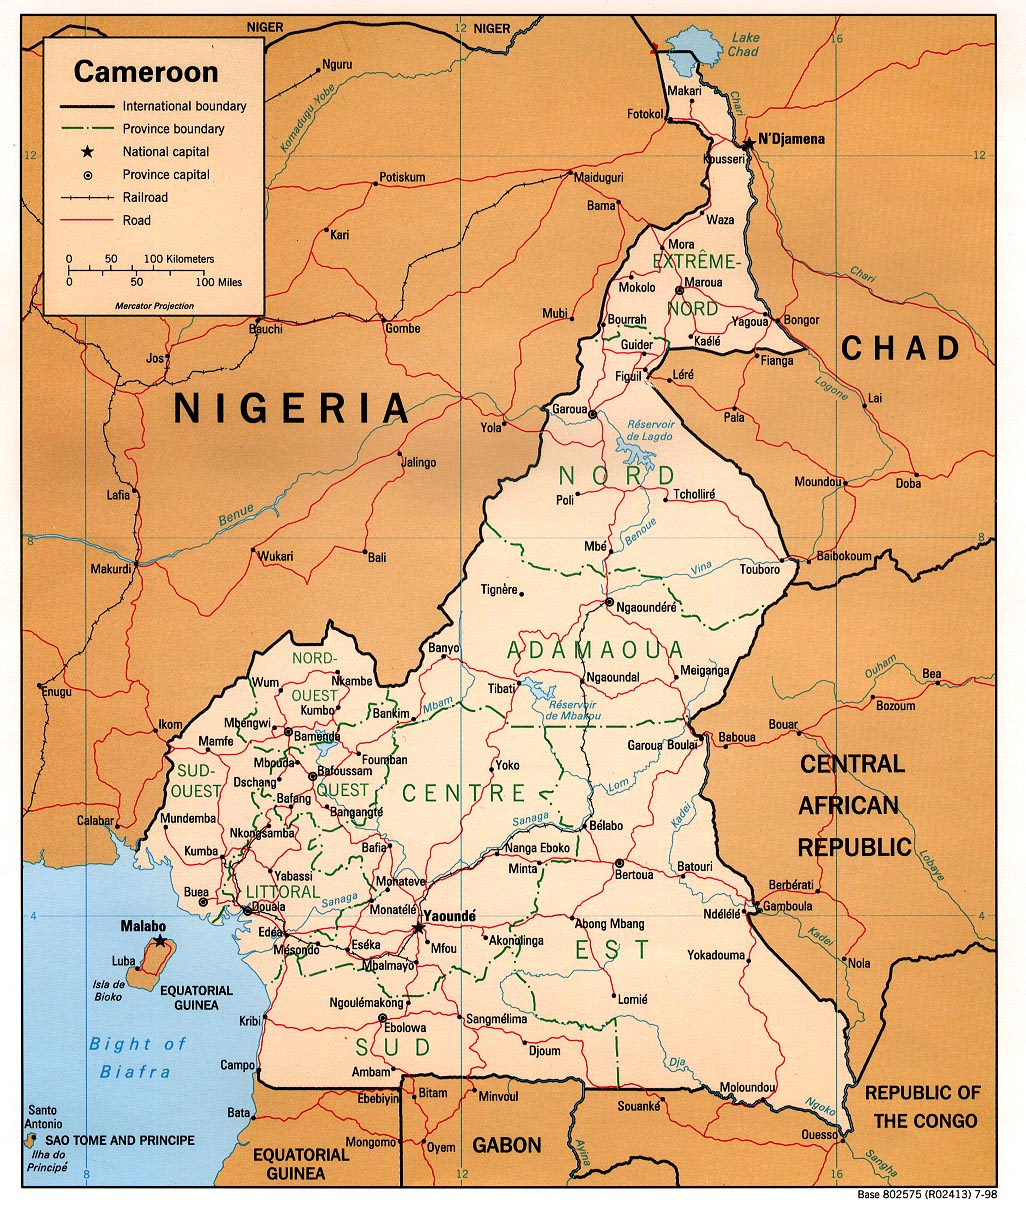 cameroon-map